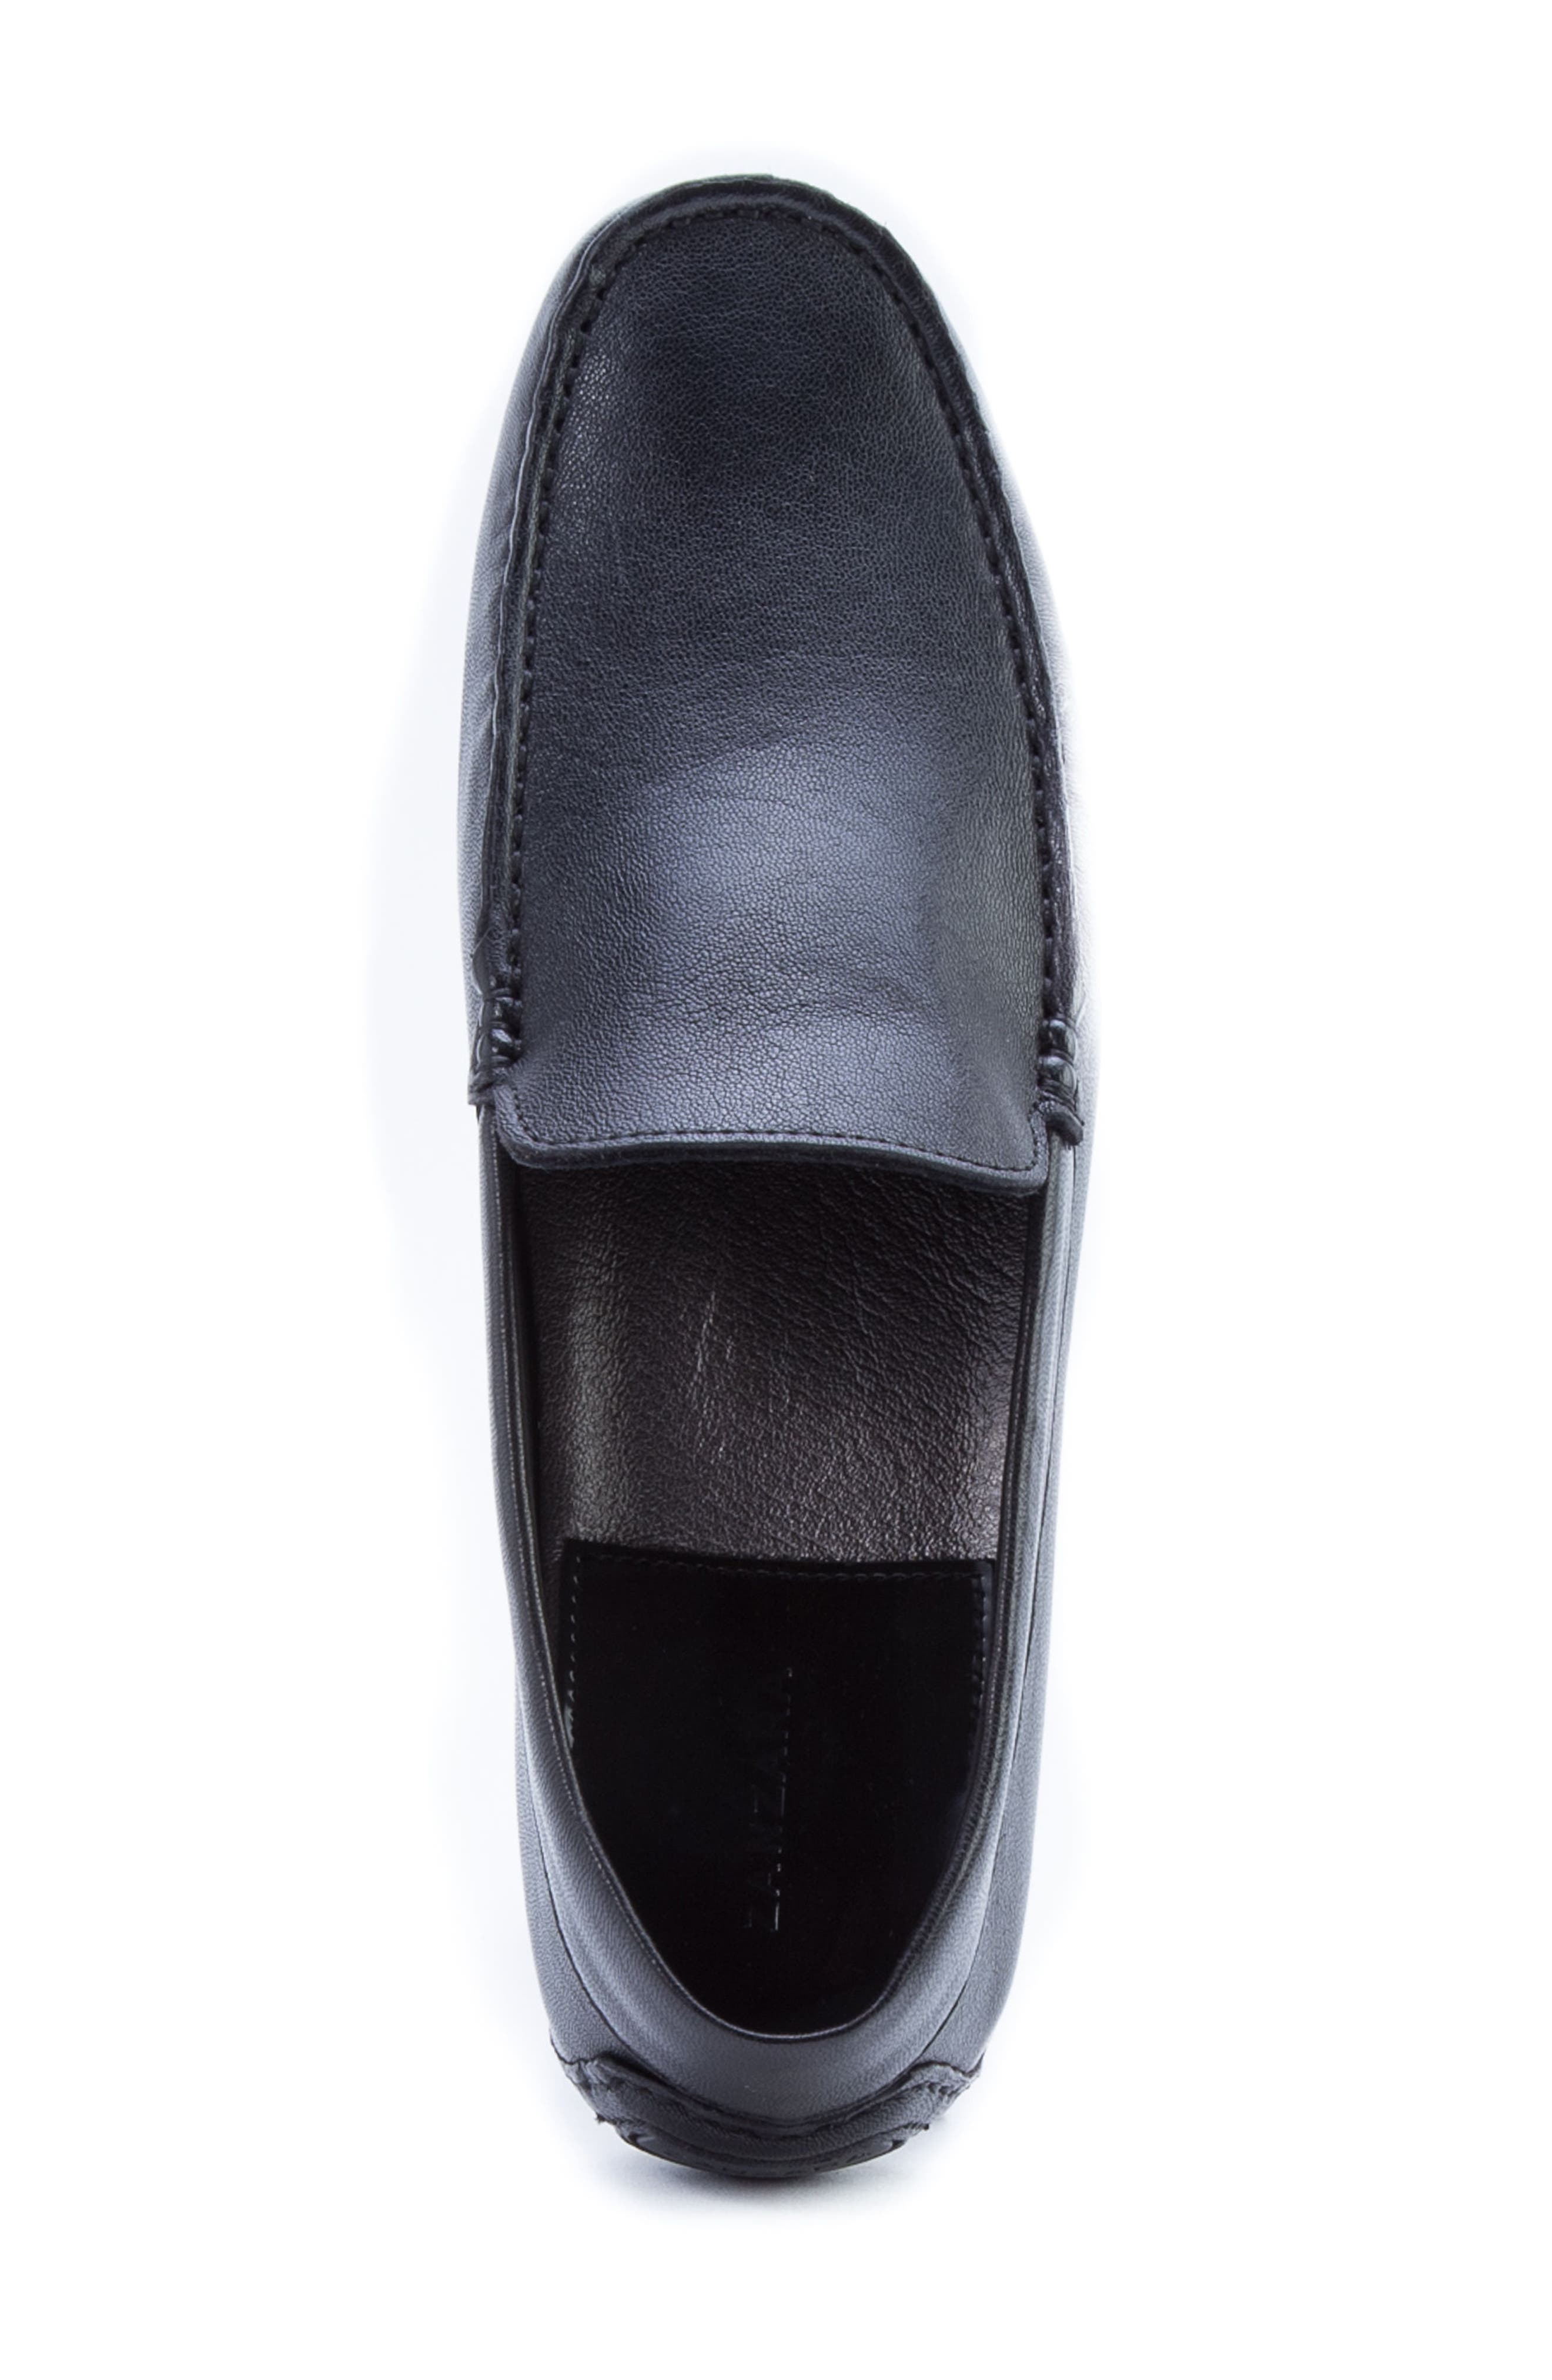 Picasso 3 Moc Toe Driving Loafer,                             Alternate thumbnail 5, color,                             BLACK LEATHER